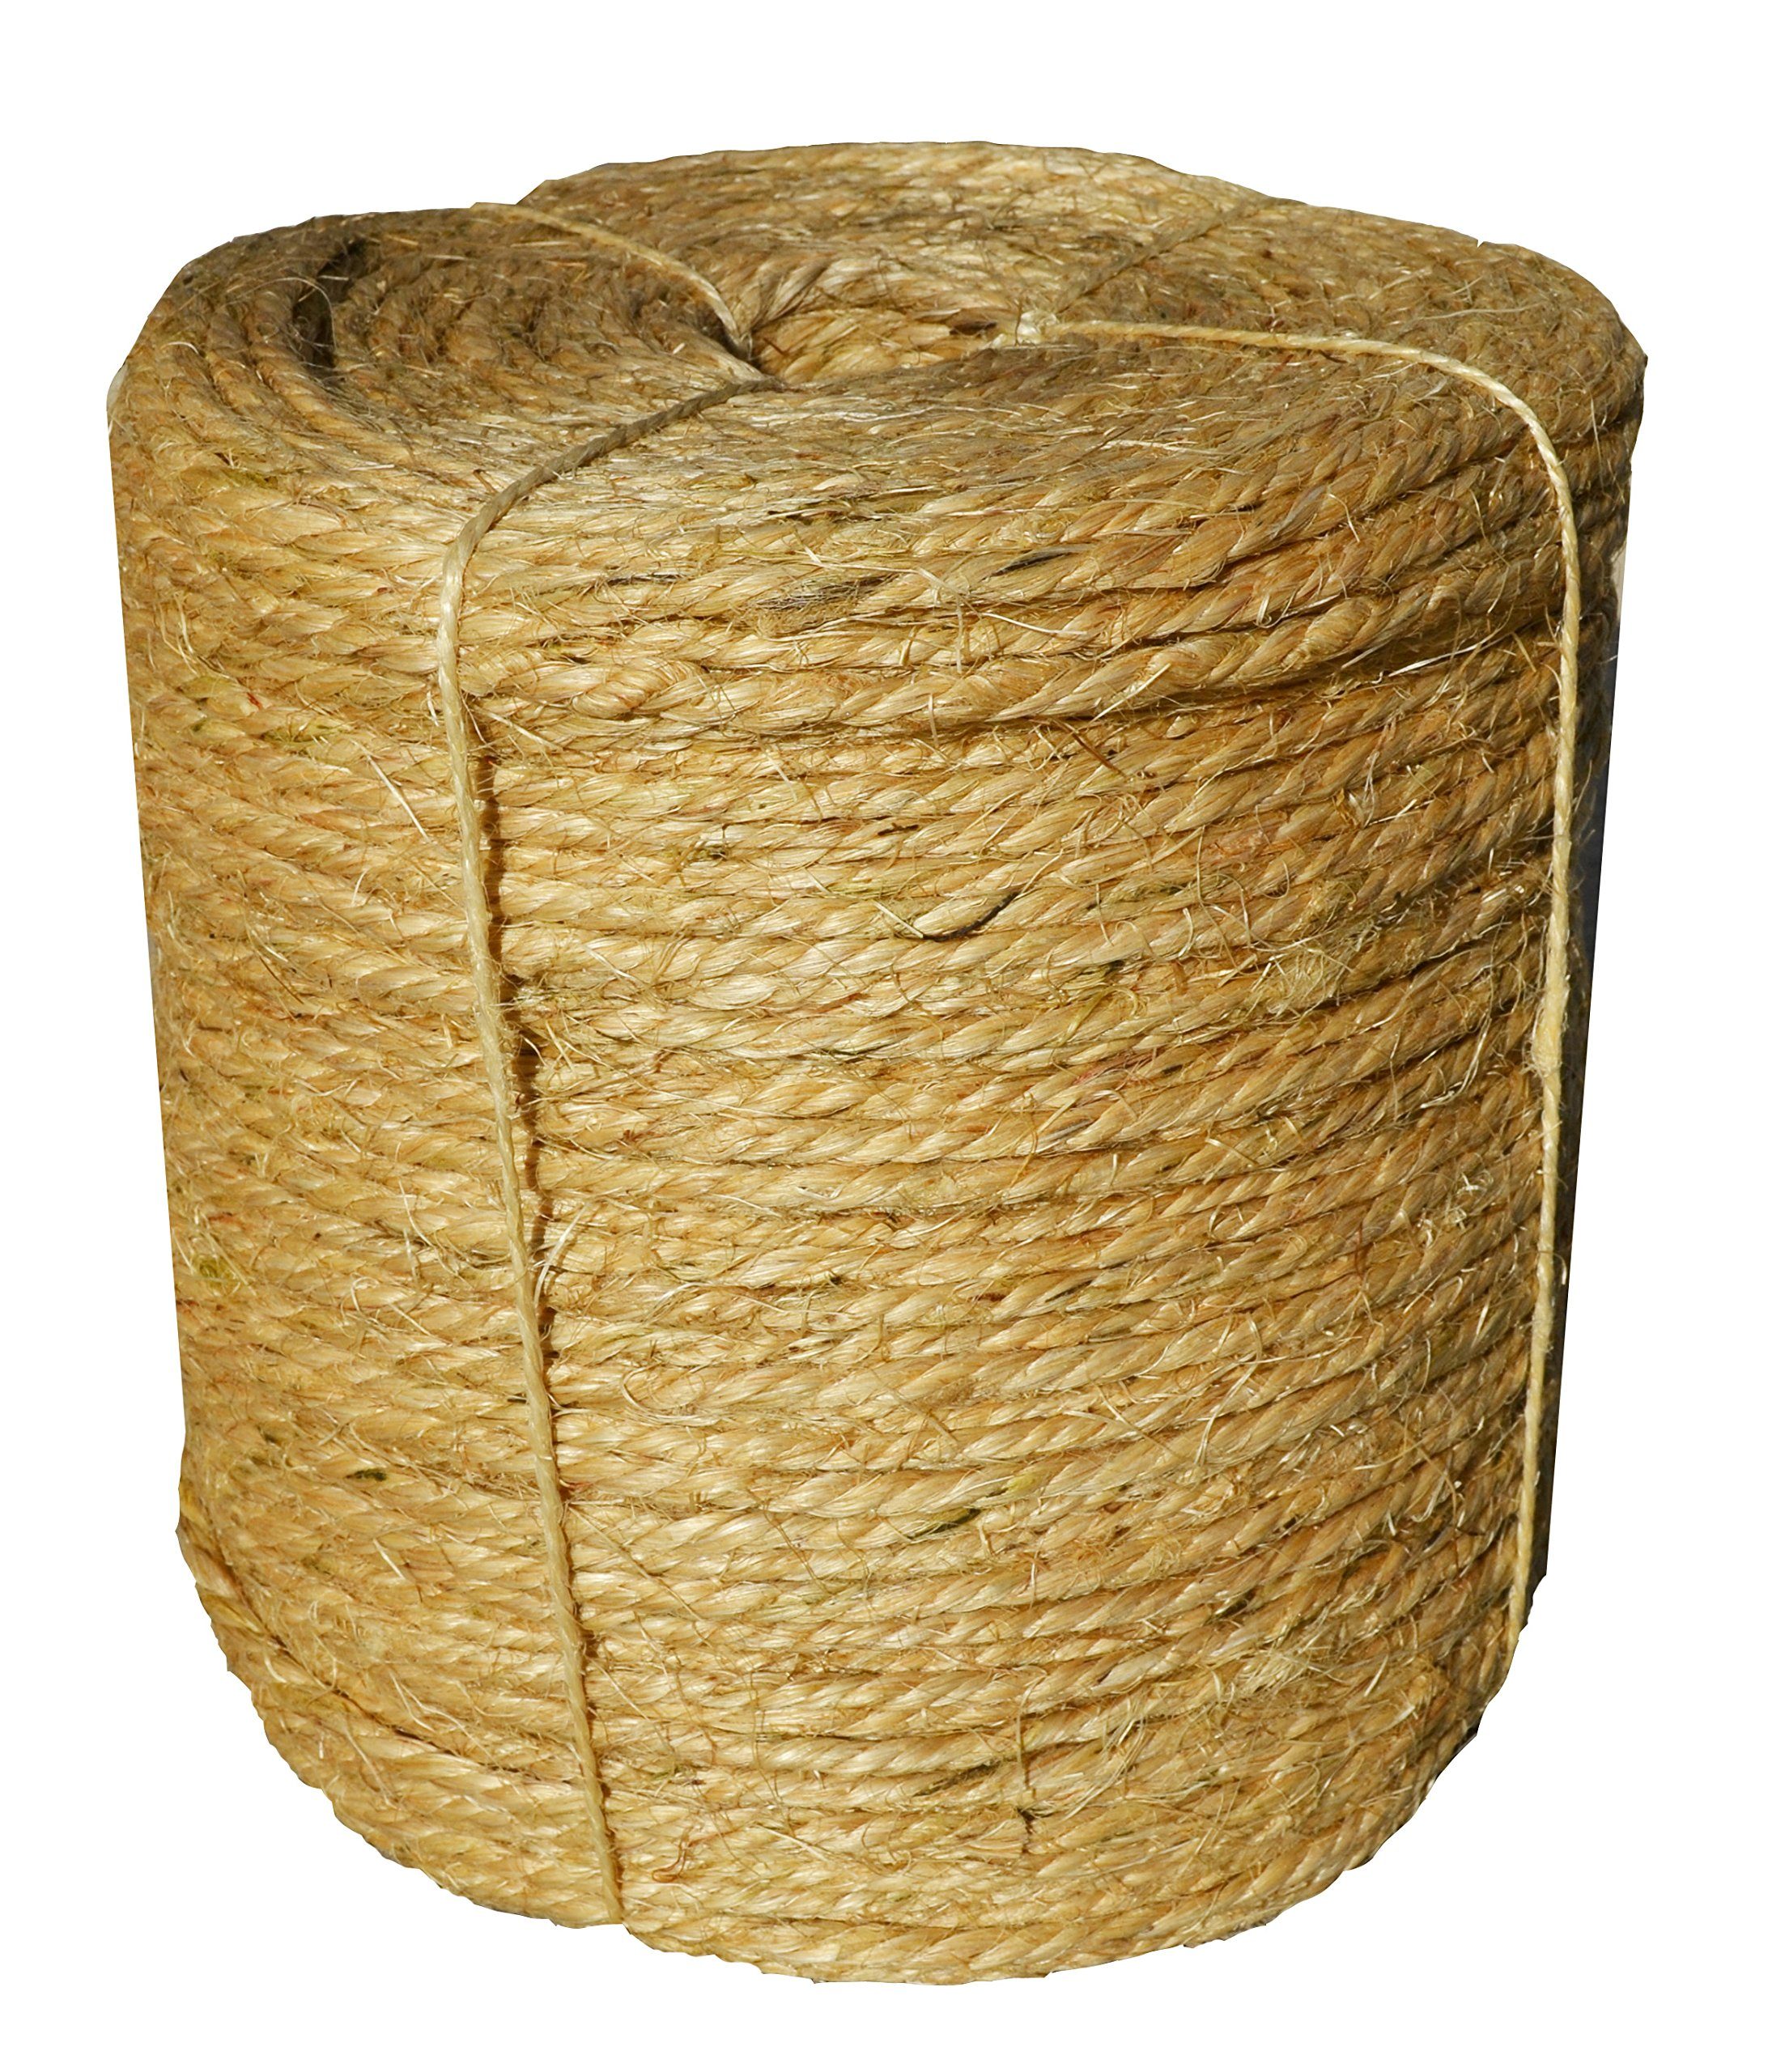 Sisal Rope Twine 1/4 inch x 1000 ft - Bulk Wholesale - Similar to Home Depot, Walmart, Lowes by Sandbaggy (1)